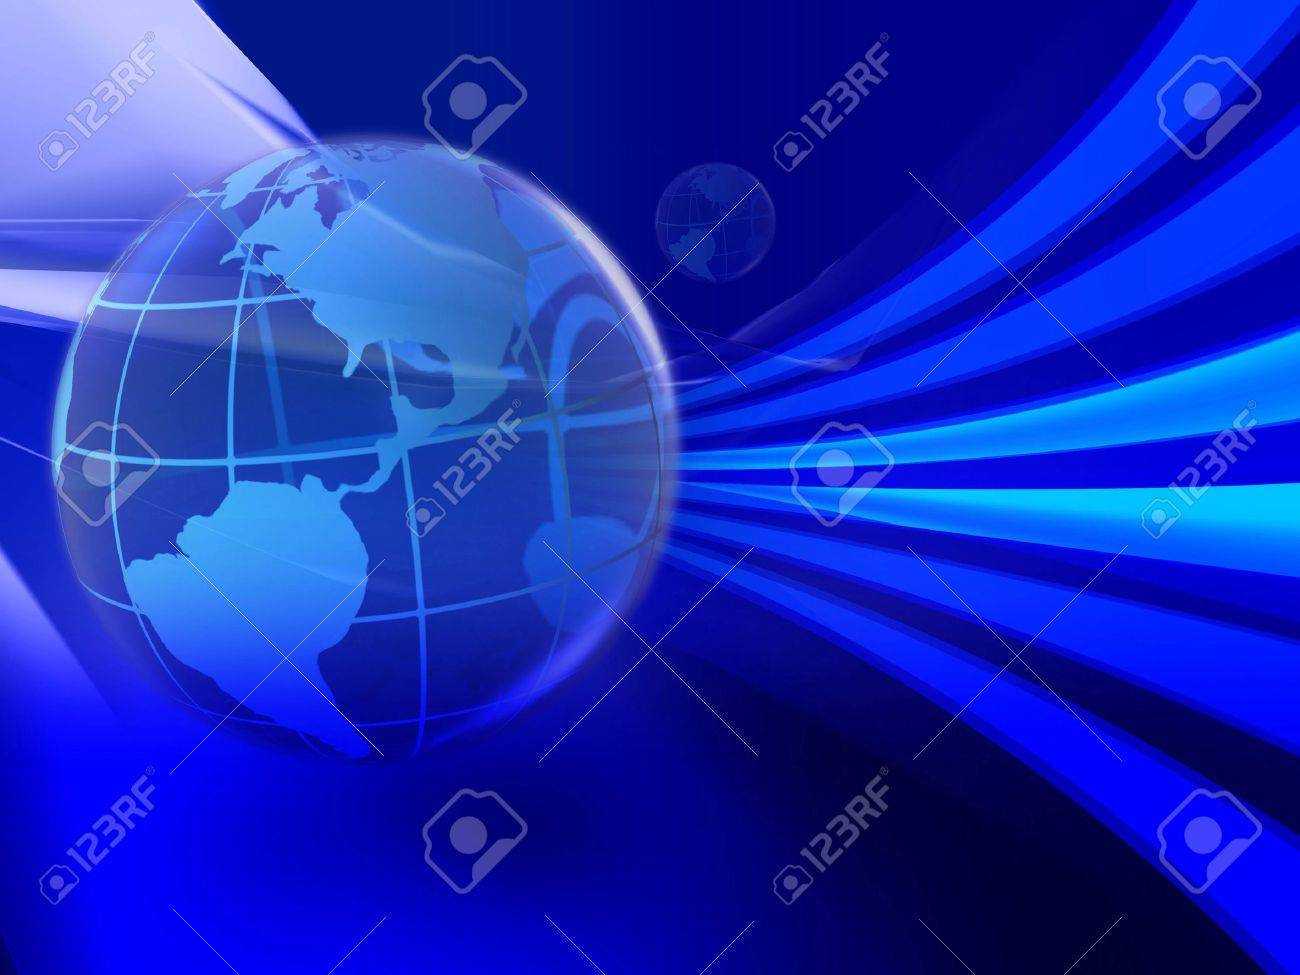 Illustration of global use of information technology. Speed of data transfer. Stock Photo - 223057